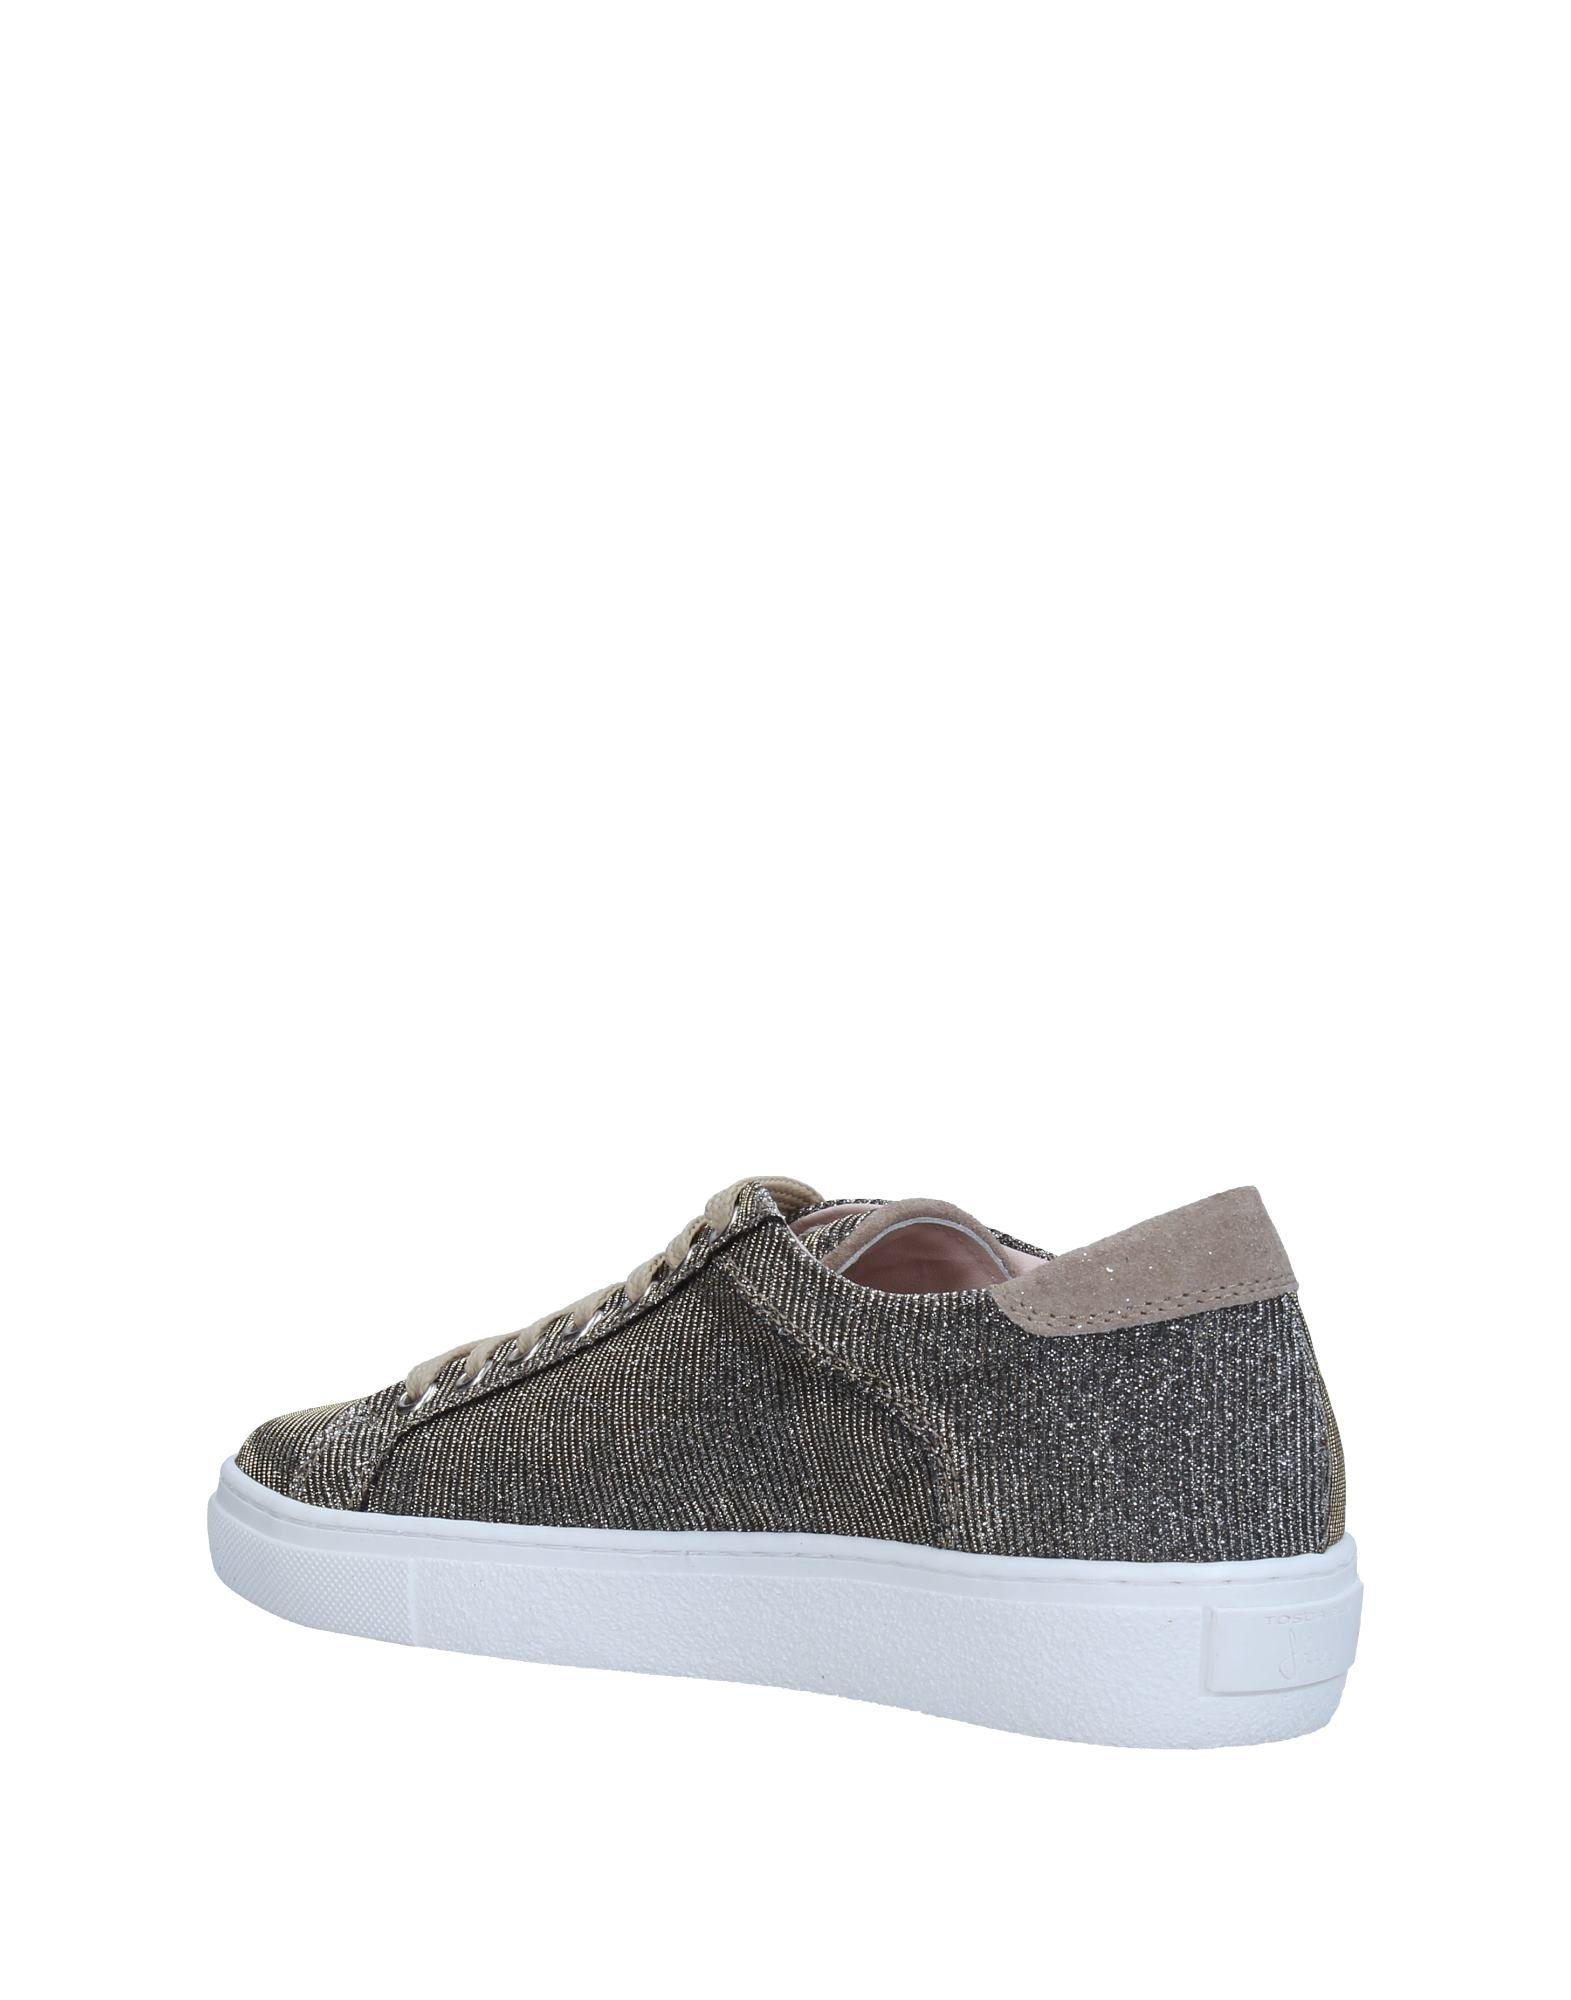 Tosca Blu Leather Low-tops & Sneakers in Lead (Grey)